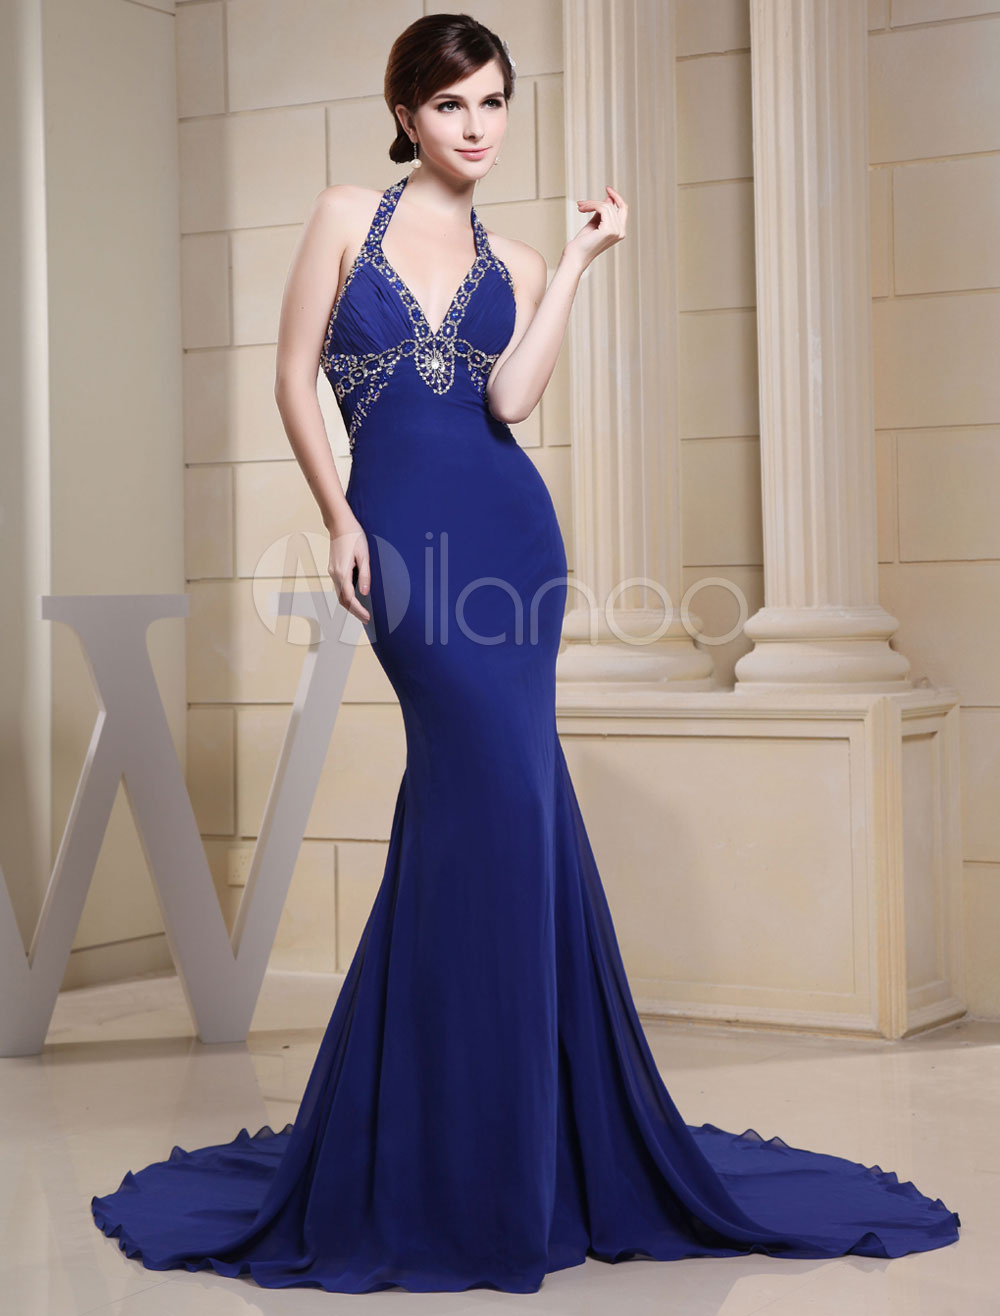 Royal Blue Evening Dress Halter Chaple Train Pleated Beading Backless Chiffon Formal Party Dress